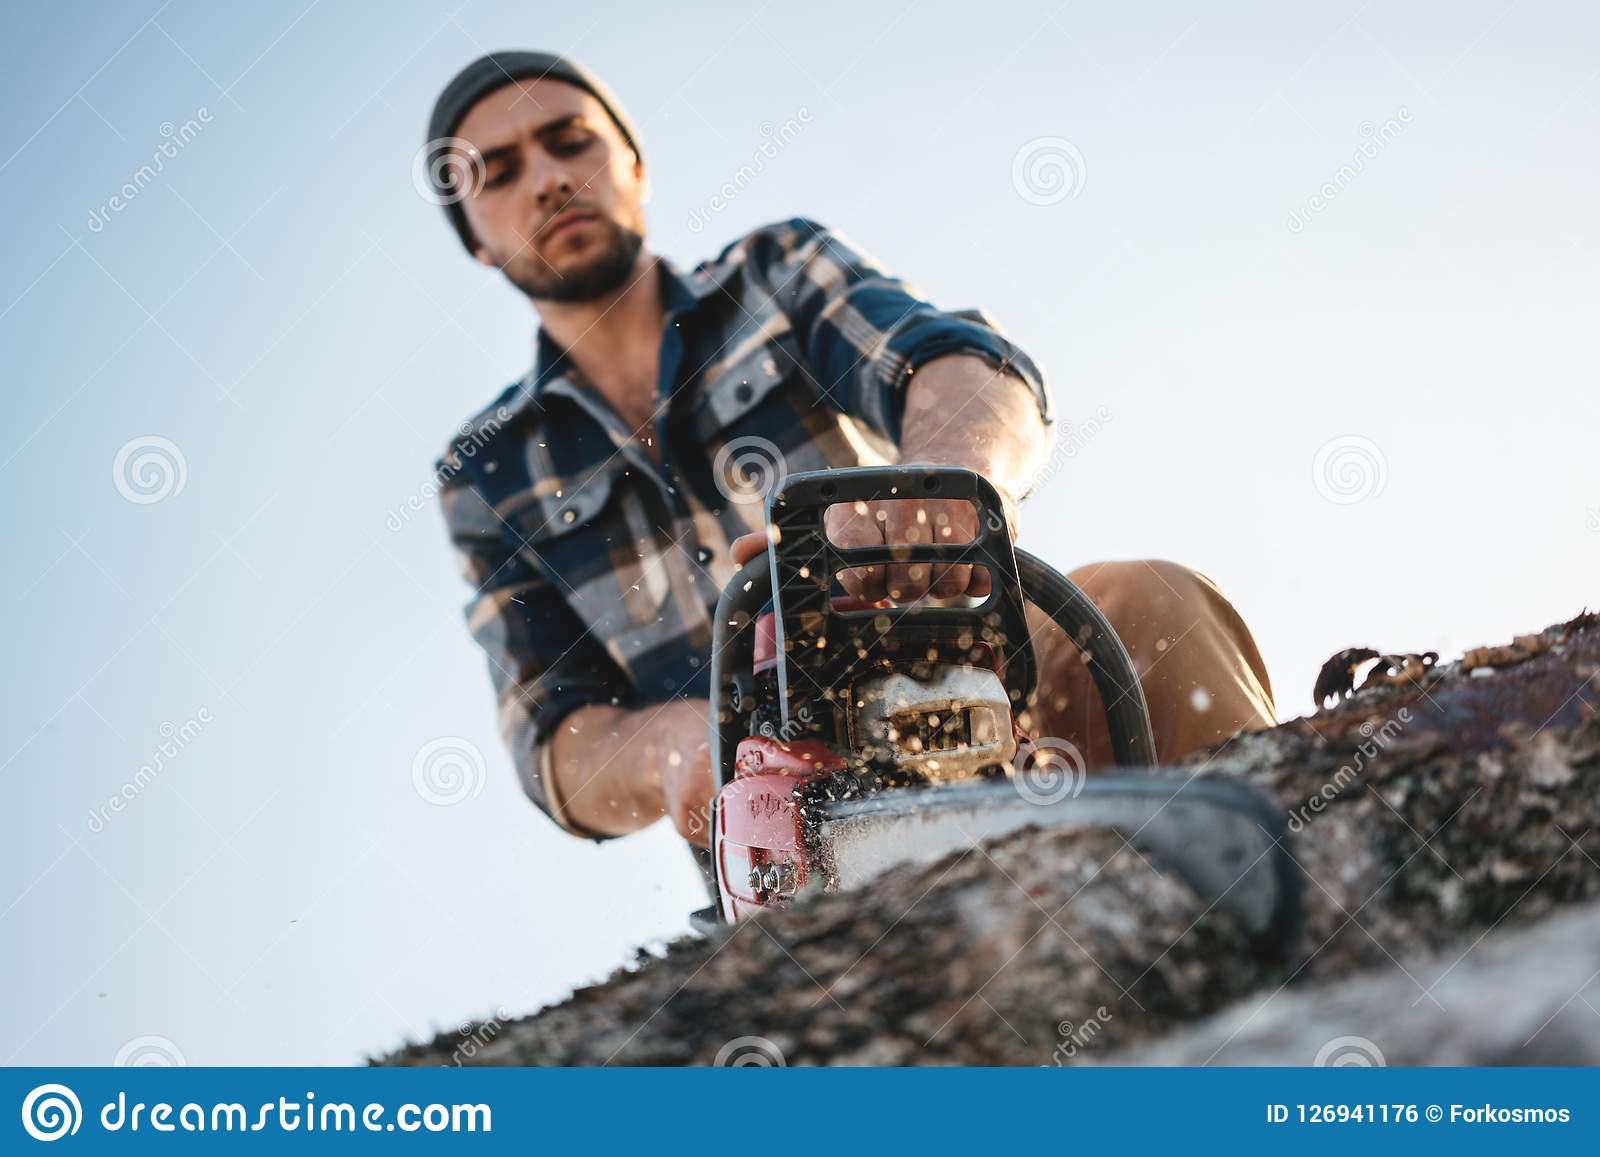 Bearded brutal lumberjack wearing plaid shirt sawing tree with chainsaw for work on sawmill